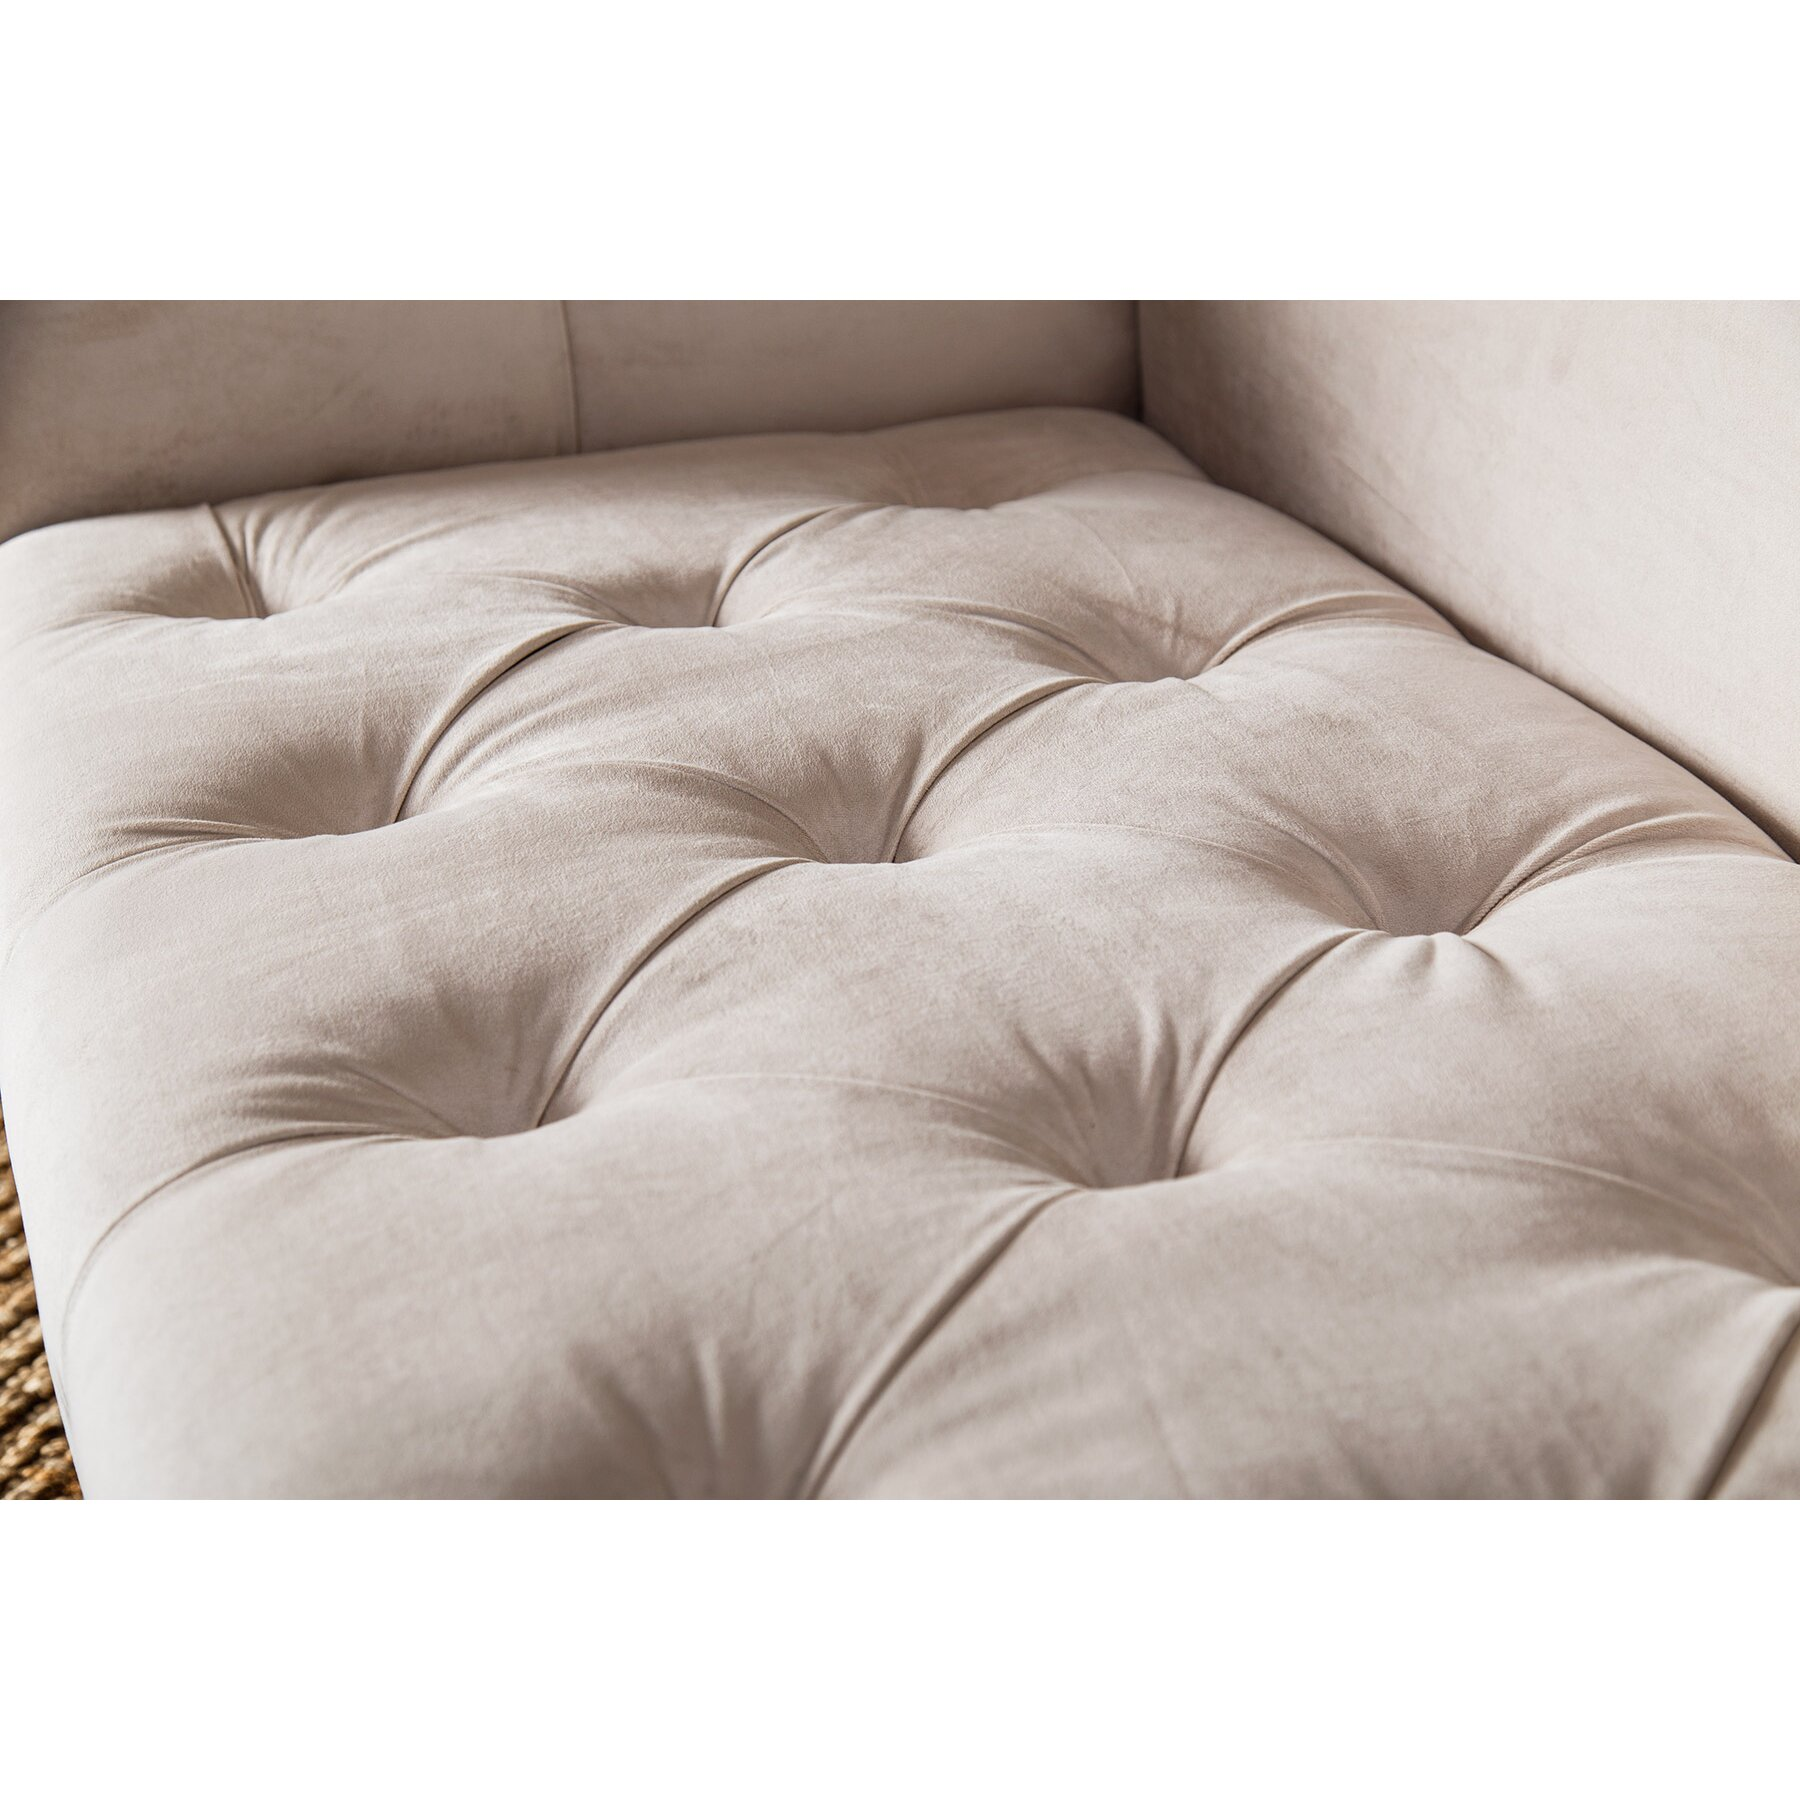 Darby Home Co Kahle Chaise Lounge & Reviews